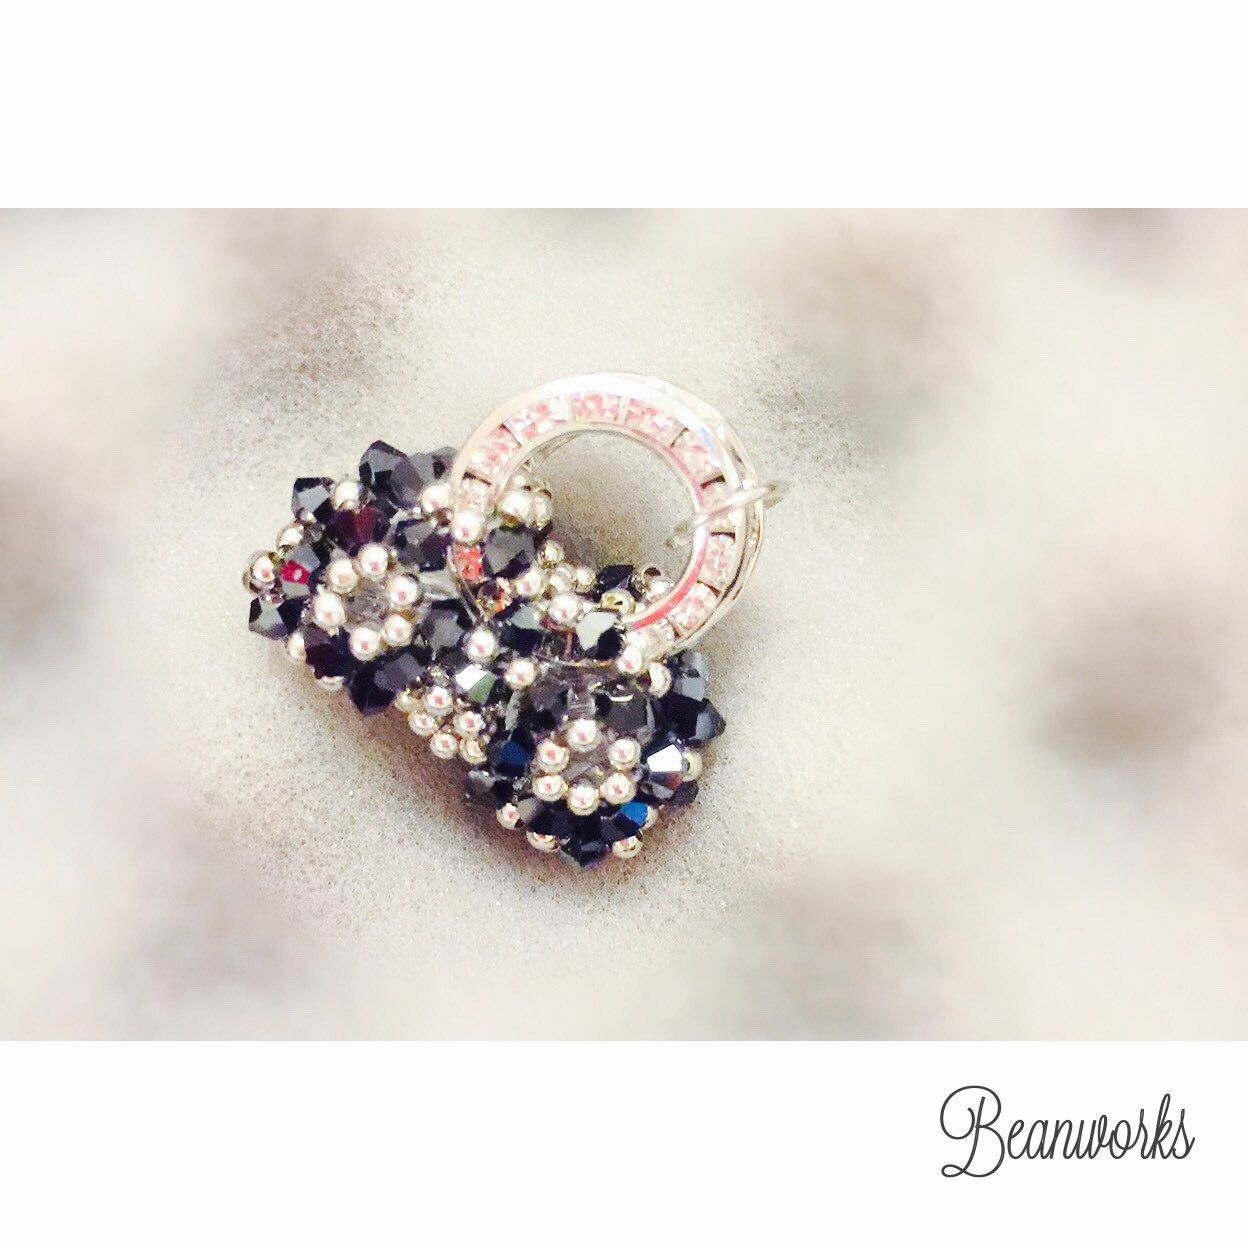 ❄️Christmas Sale 20% off❄️ NOW @ HK$238  - 100% handmade of real Swarovski crystal (3mm and silver beads). - Size: 2 x 2cm - A pendent on your necklace; or hang on a keychain; or iPhone string.  Shop at https://www.etsy.com/shop/Beanworksonlinestore